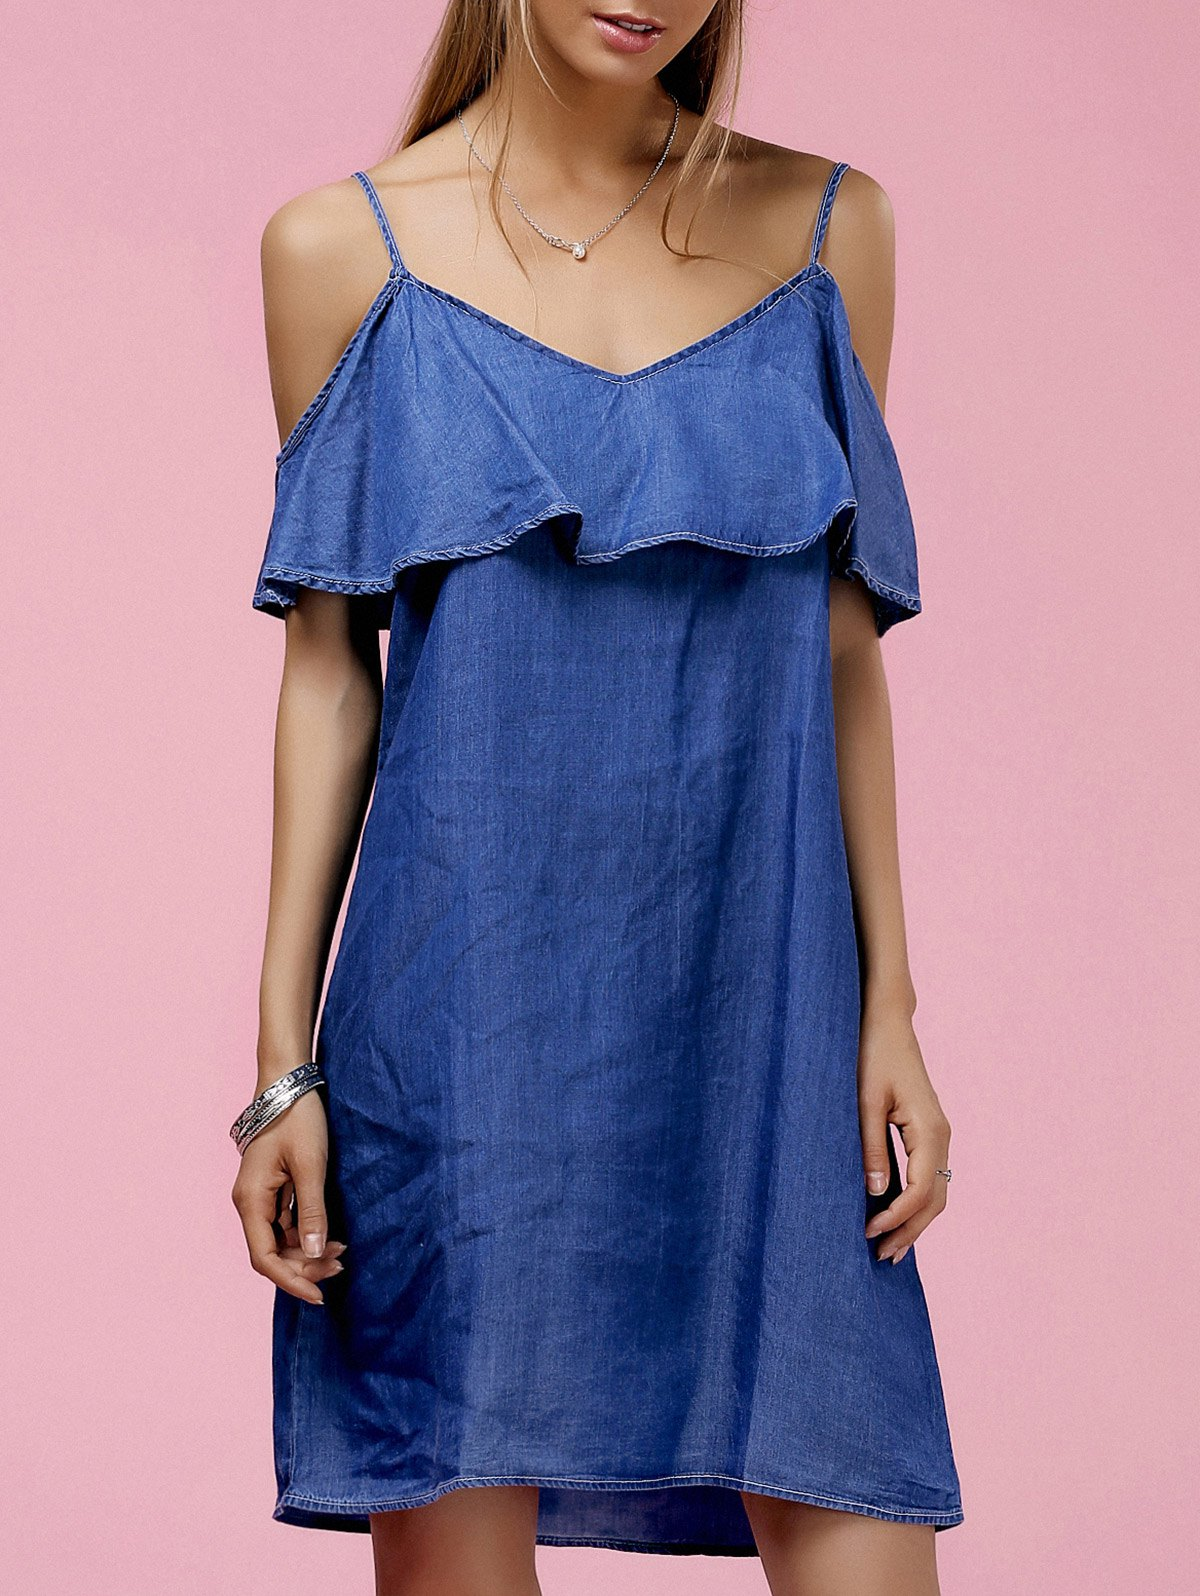 Fashionable Women's Strappy Ruffled Cold Shoulder Denim Dress - BLUE L